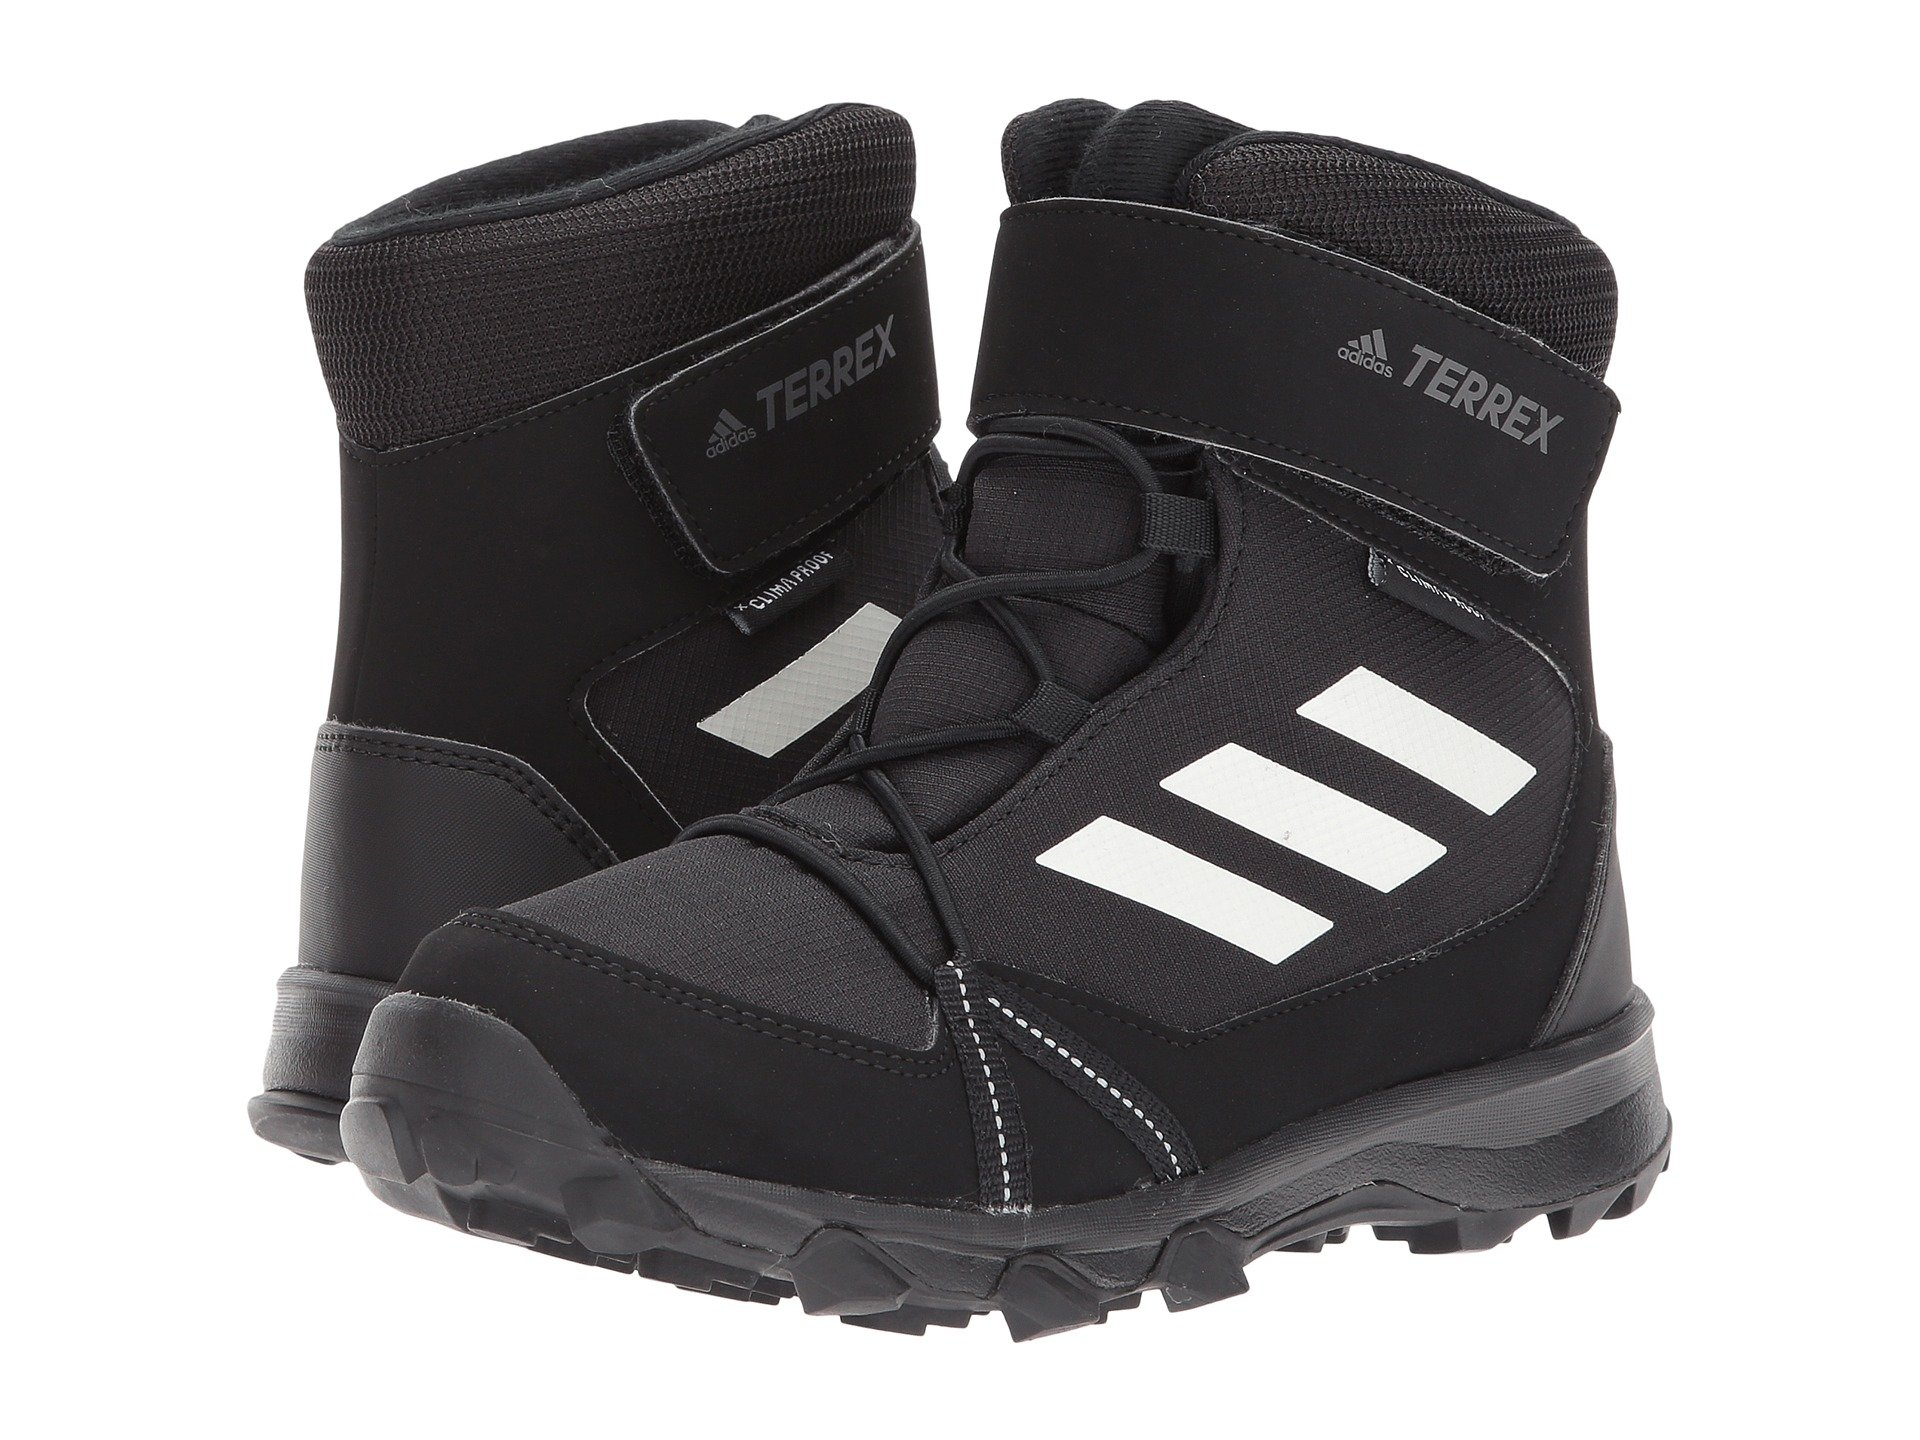 20d702f3c0f Your Selections. Shoes · Boots · Winter and Snow Boots · Adidas ...